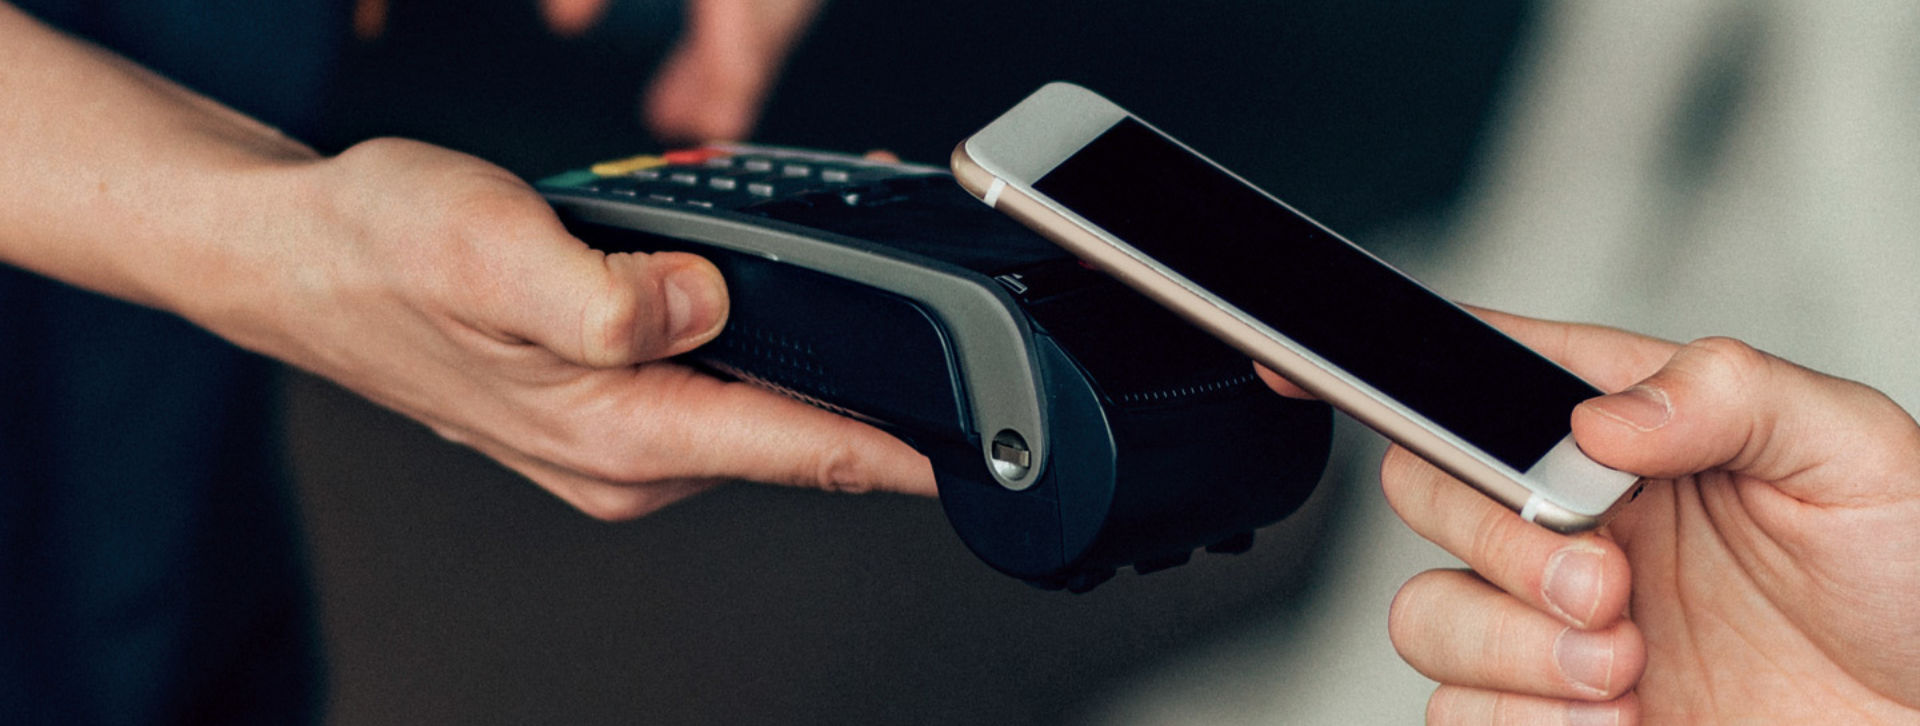 hands holding smart phone and credit card processor